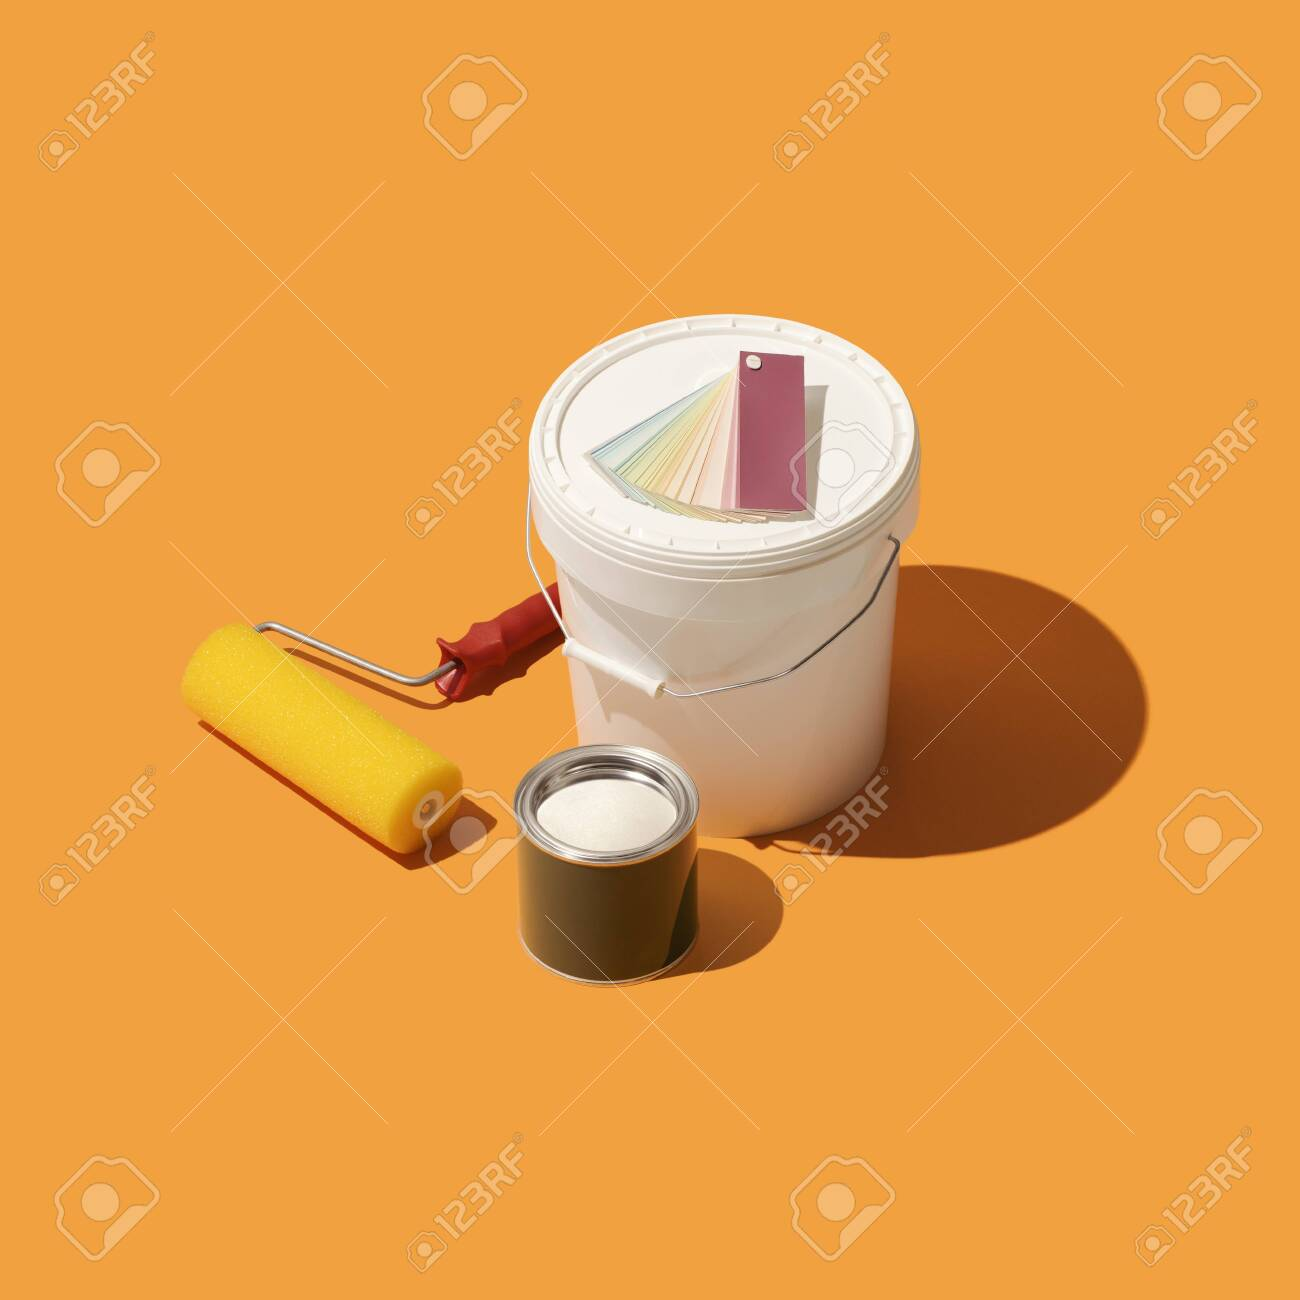 Paint Bucket With Swatches And Paint Roller Diy Home Renovation Stock Photo Picture And Royalty Free Image Image 121504262